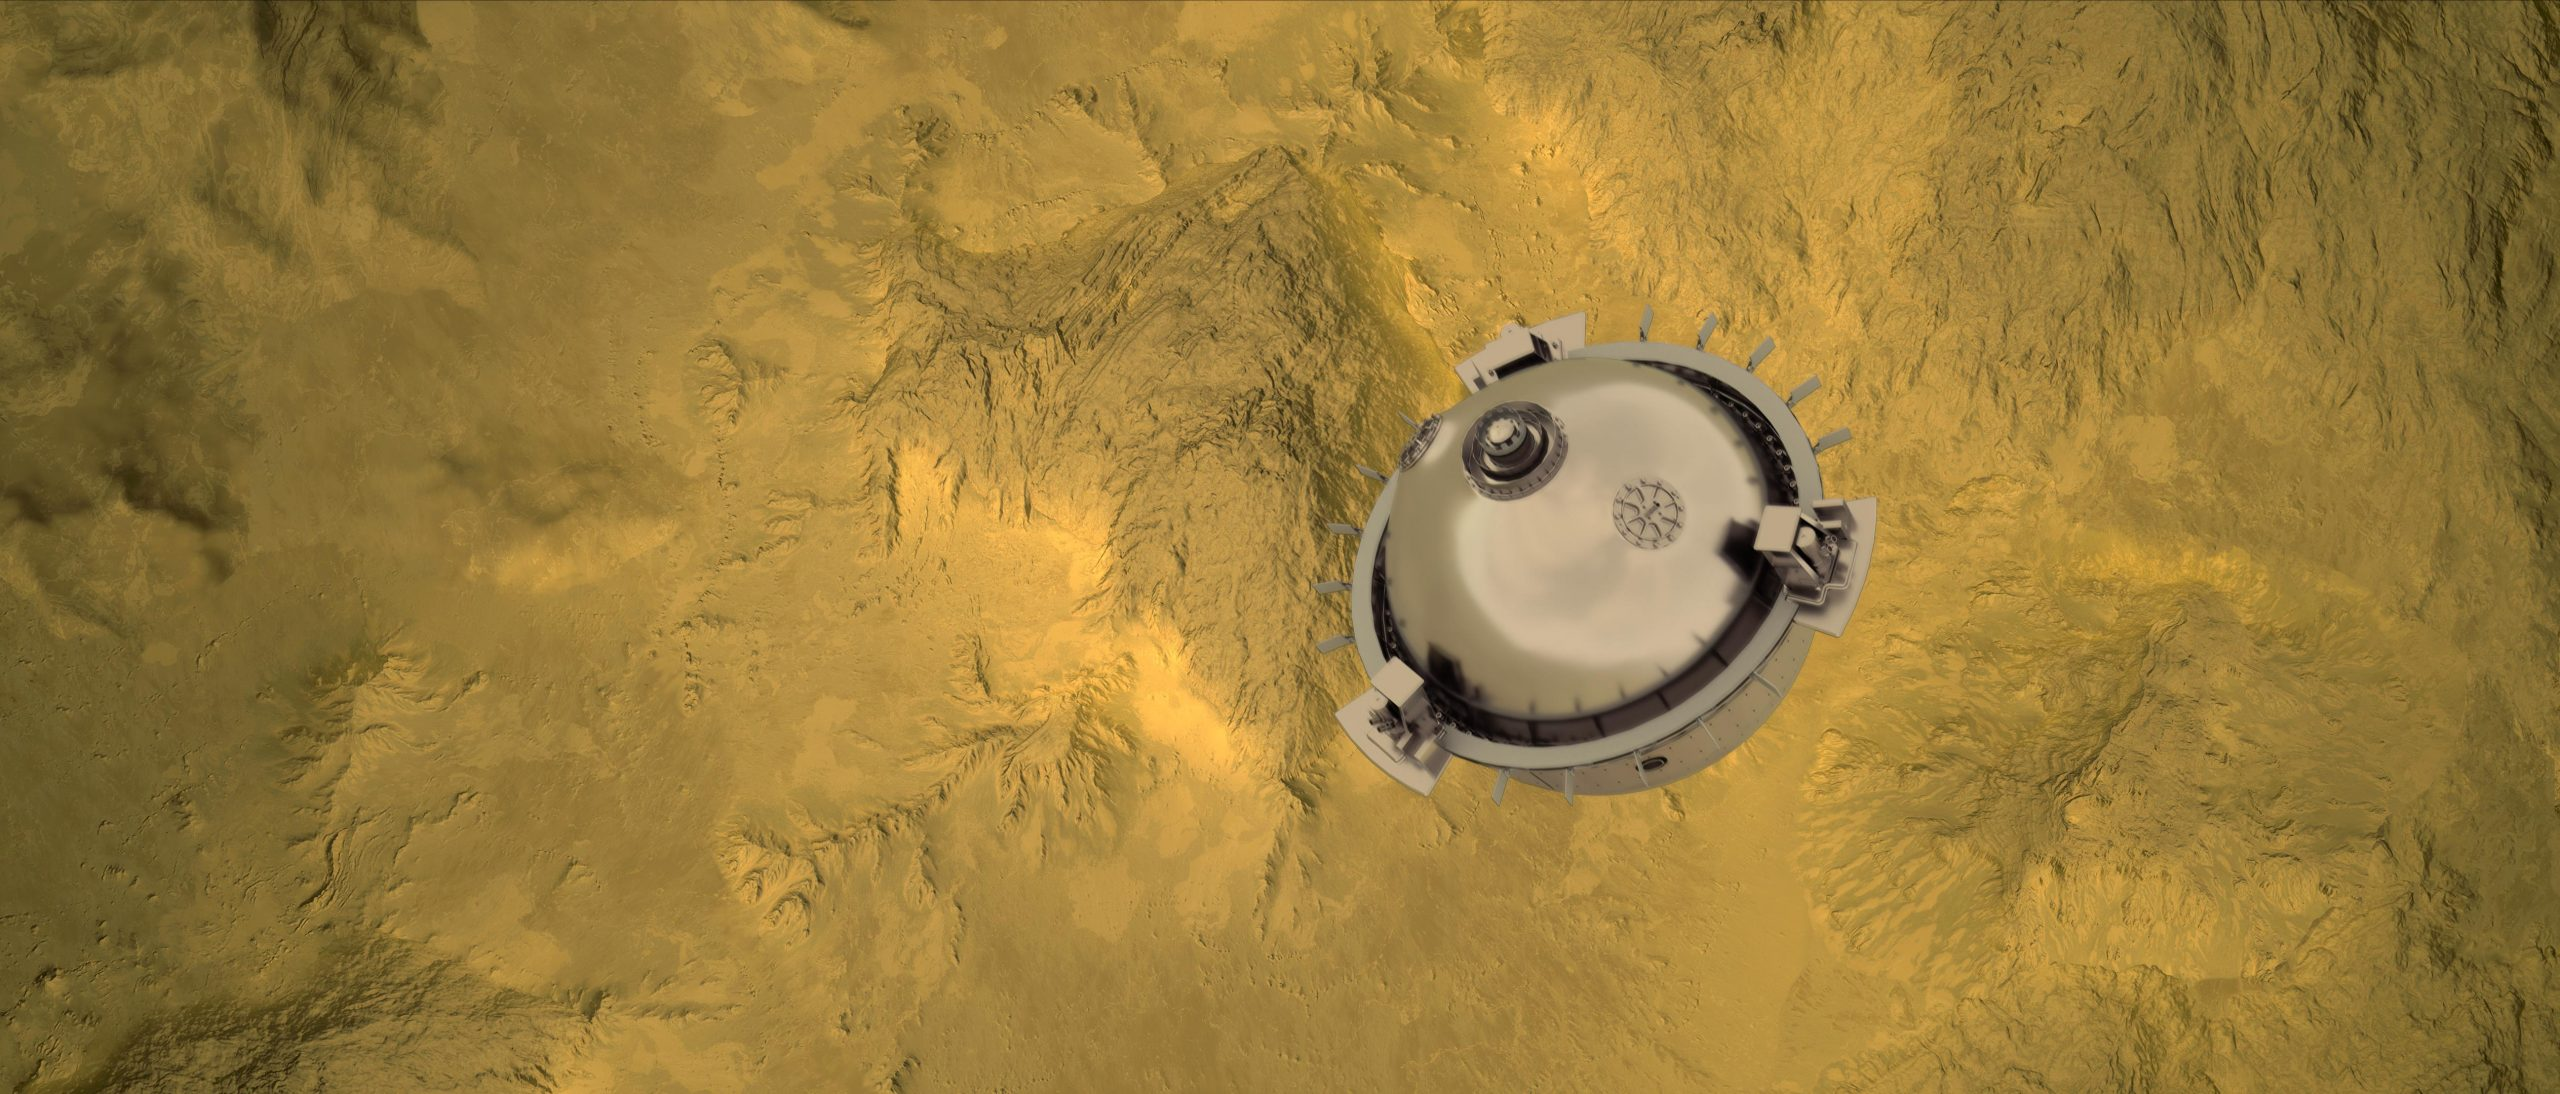 First NASA Probe Mission to Venus in 40 Years: DAVINCI+ to Explore Divergent Fate of Earth's Mysterious Twin